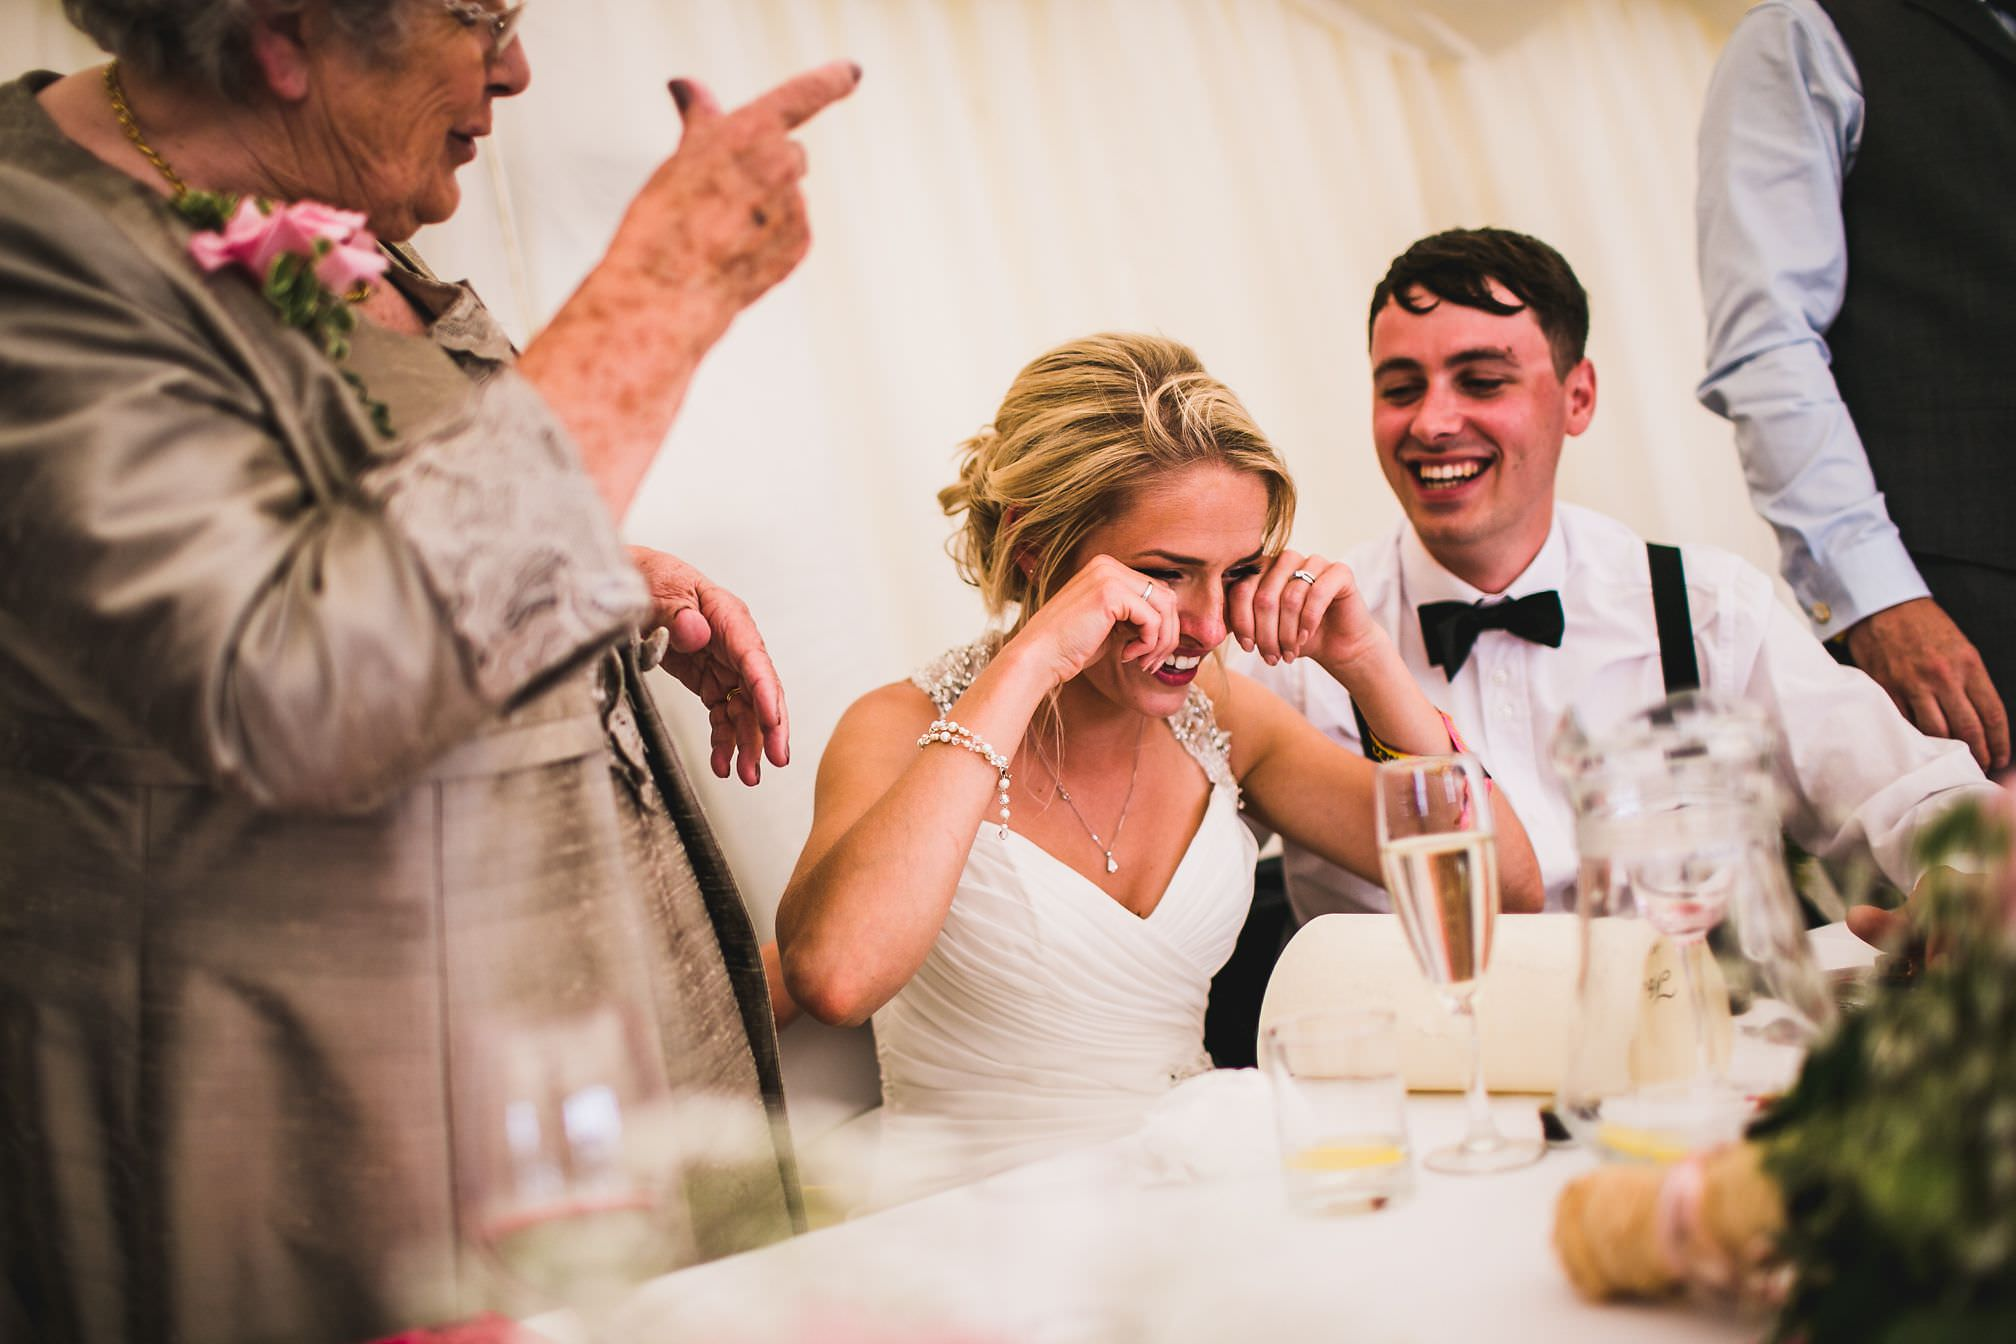 MyWed Editors Choice - Bride Laughing and Crying during Speeches